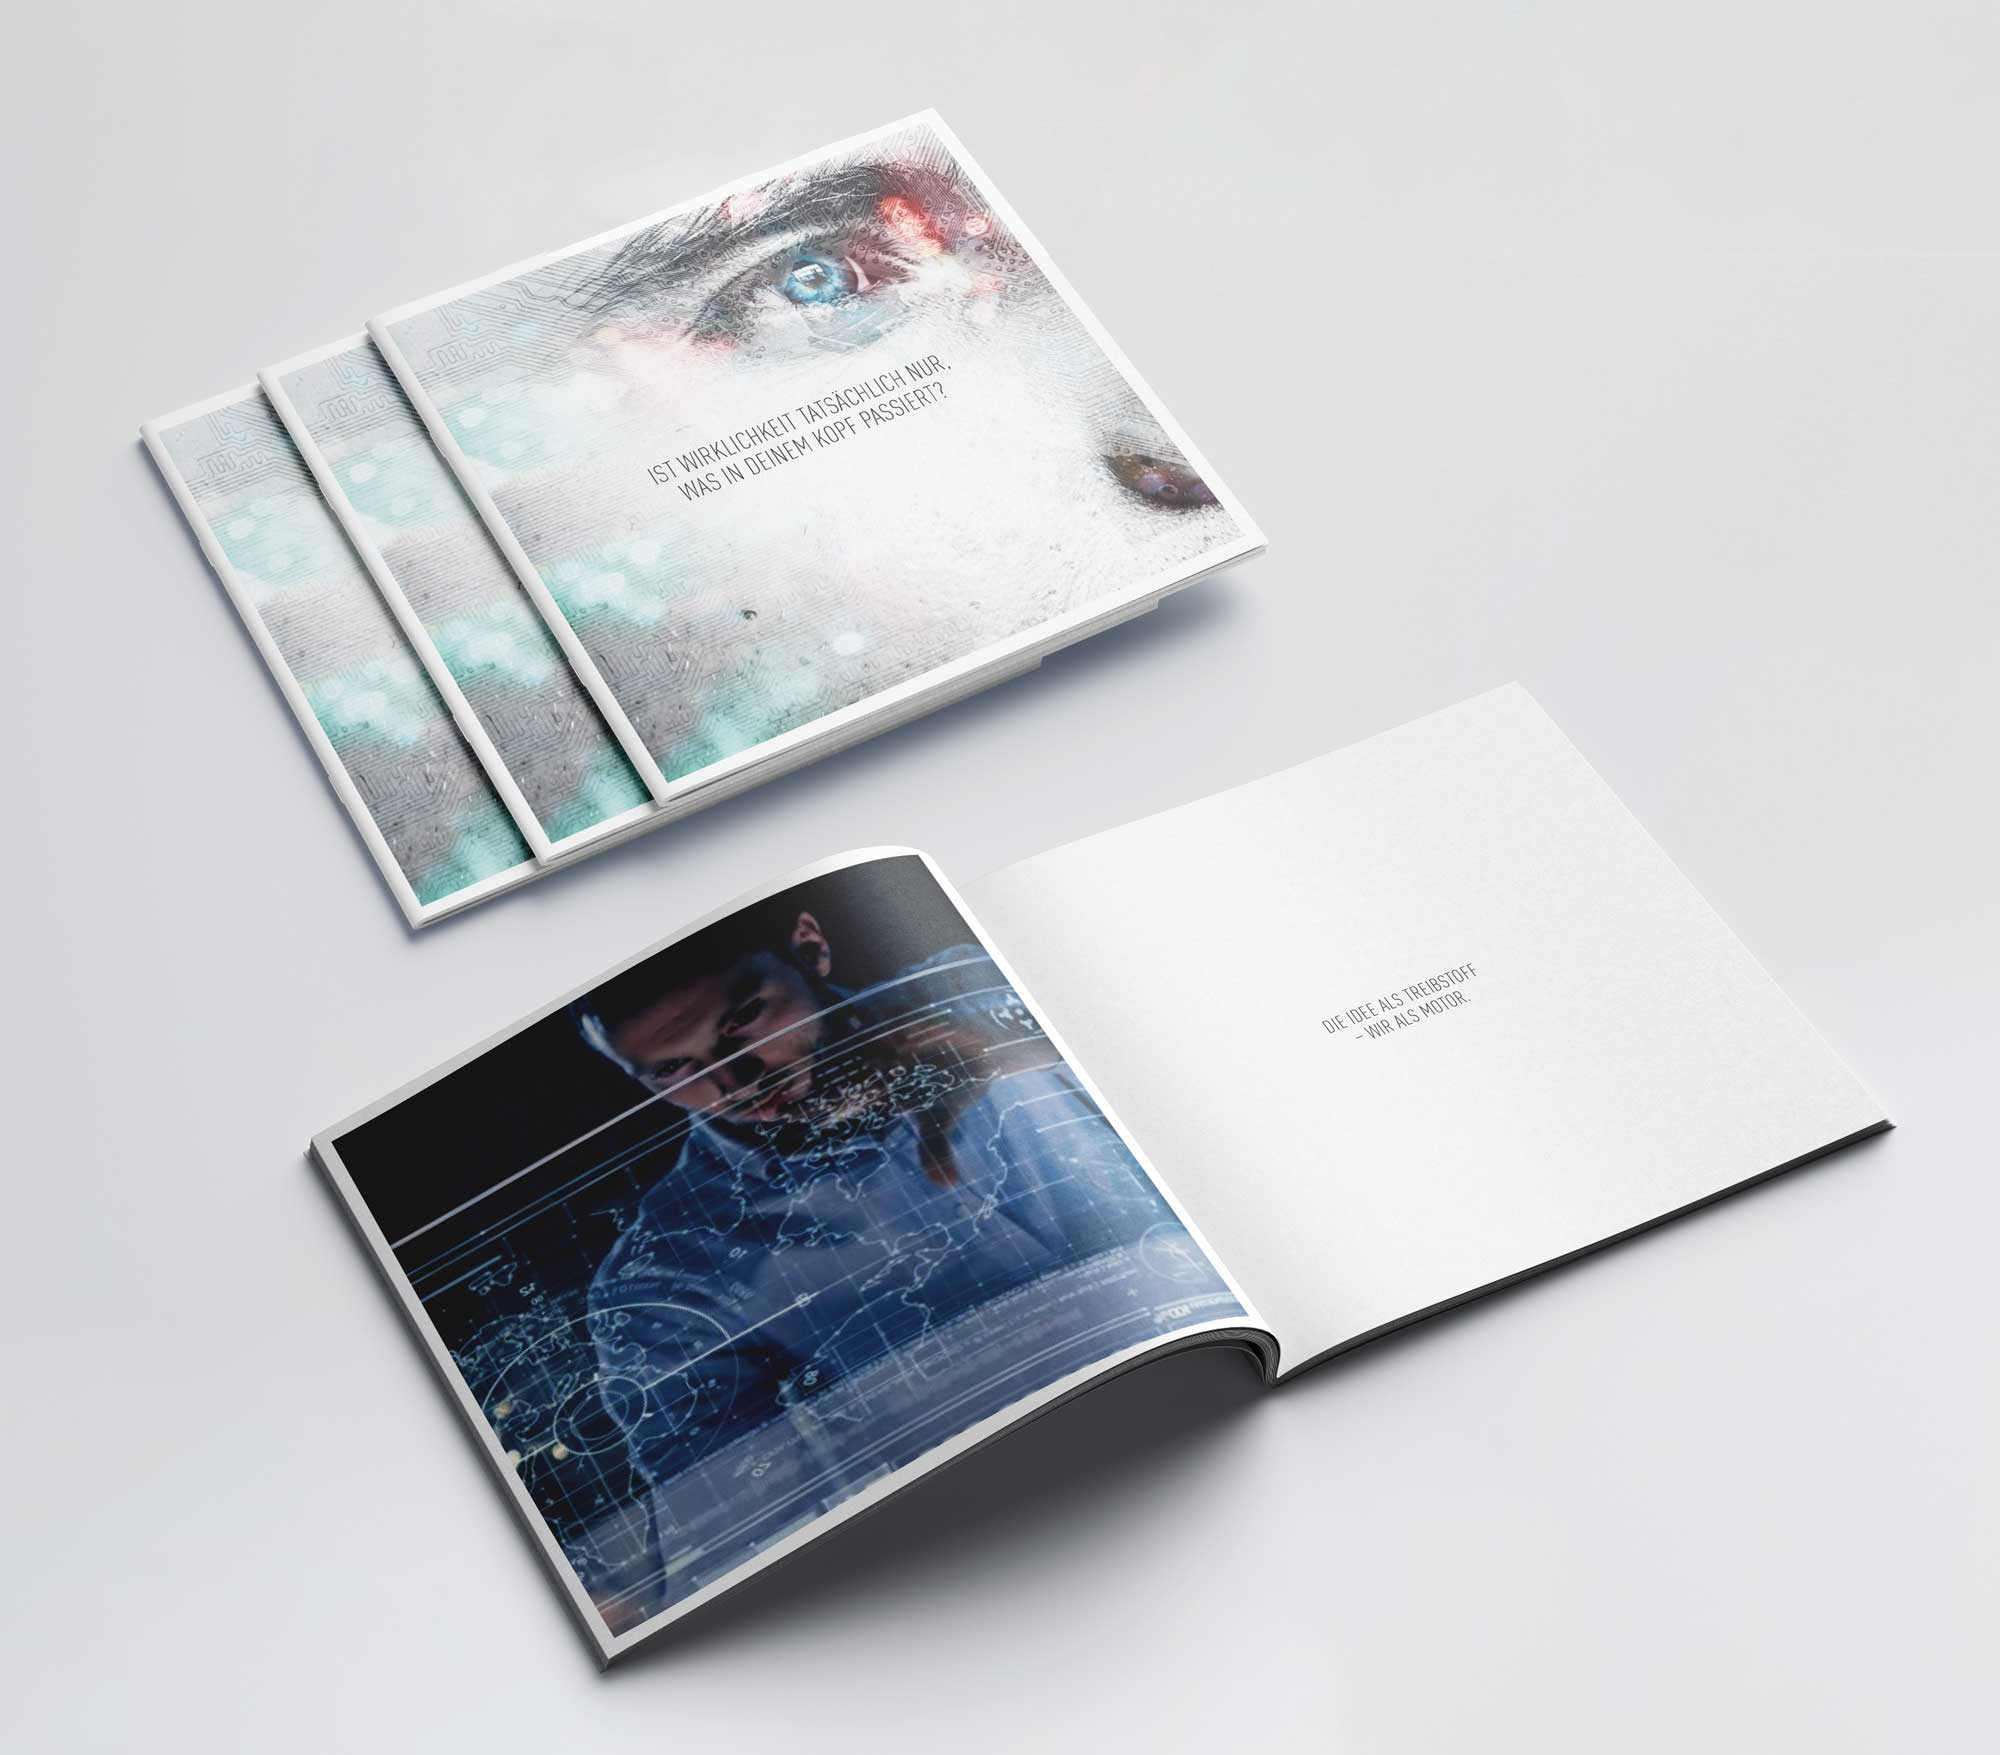 DMG MORI Booklet